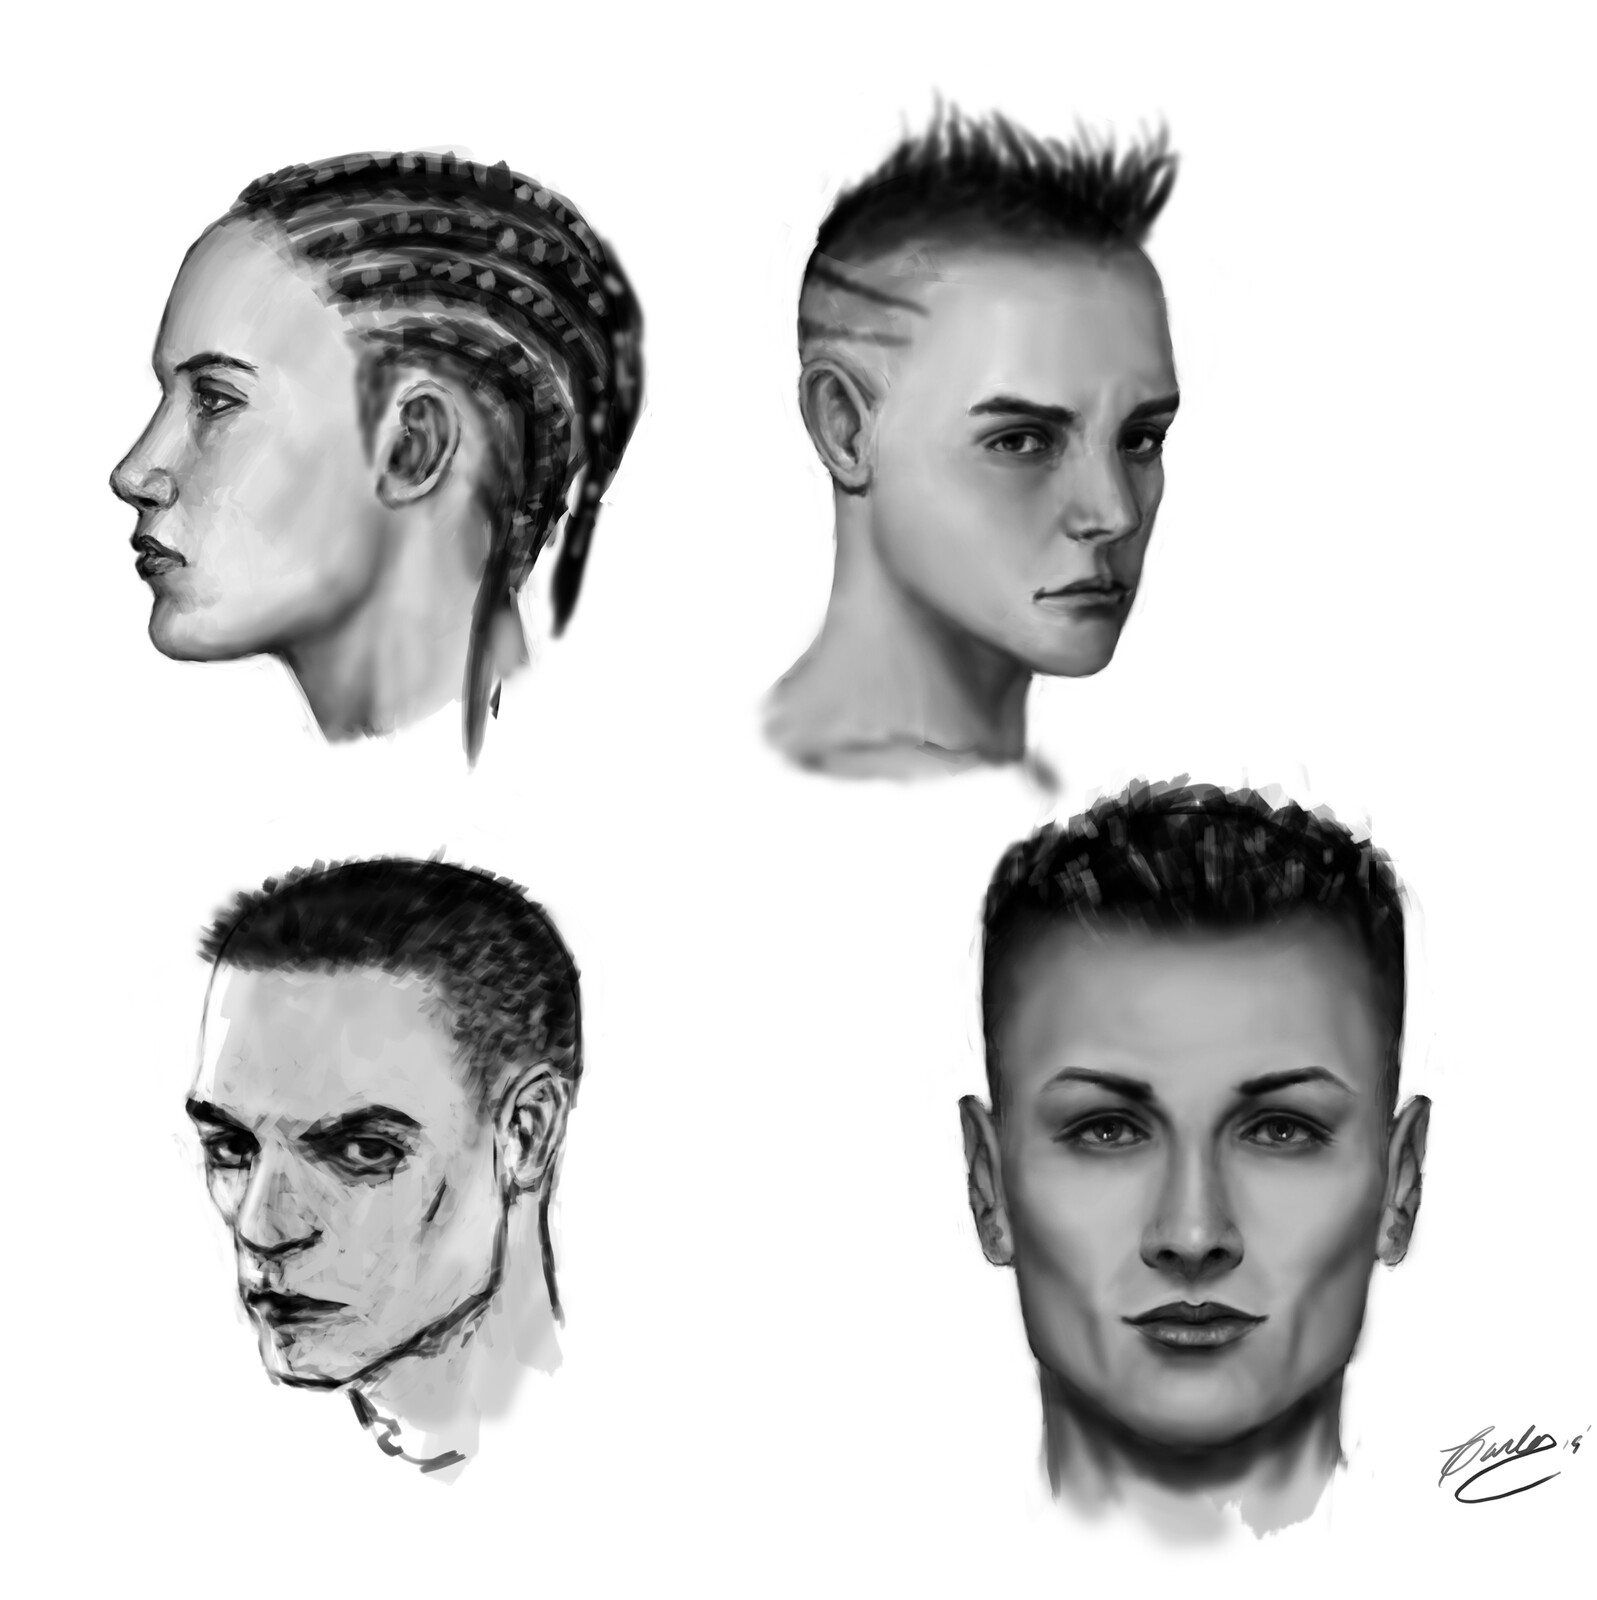 Sketch 2-10-2019: Faces